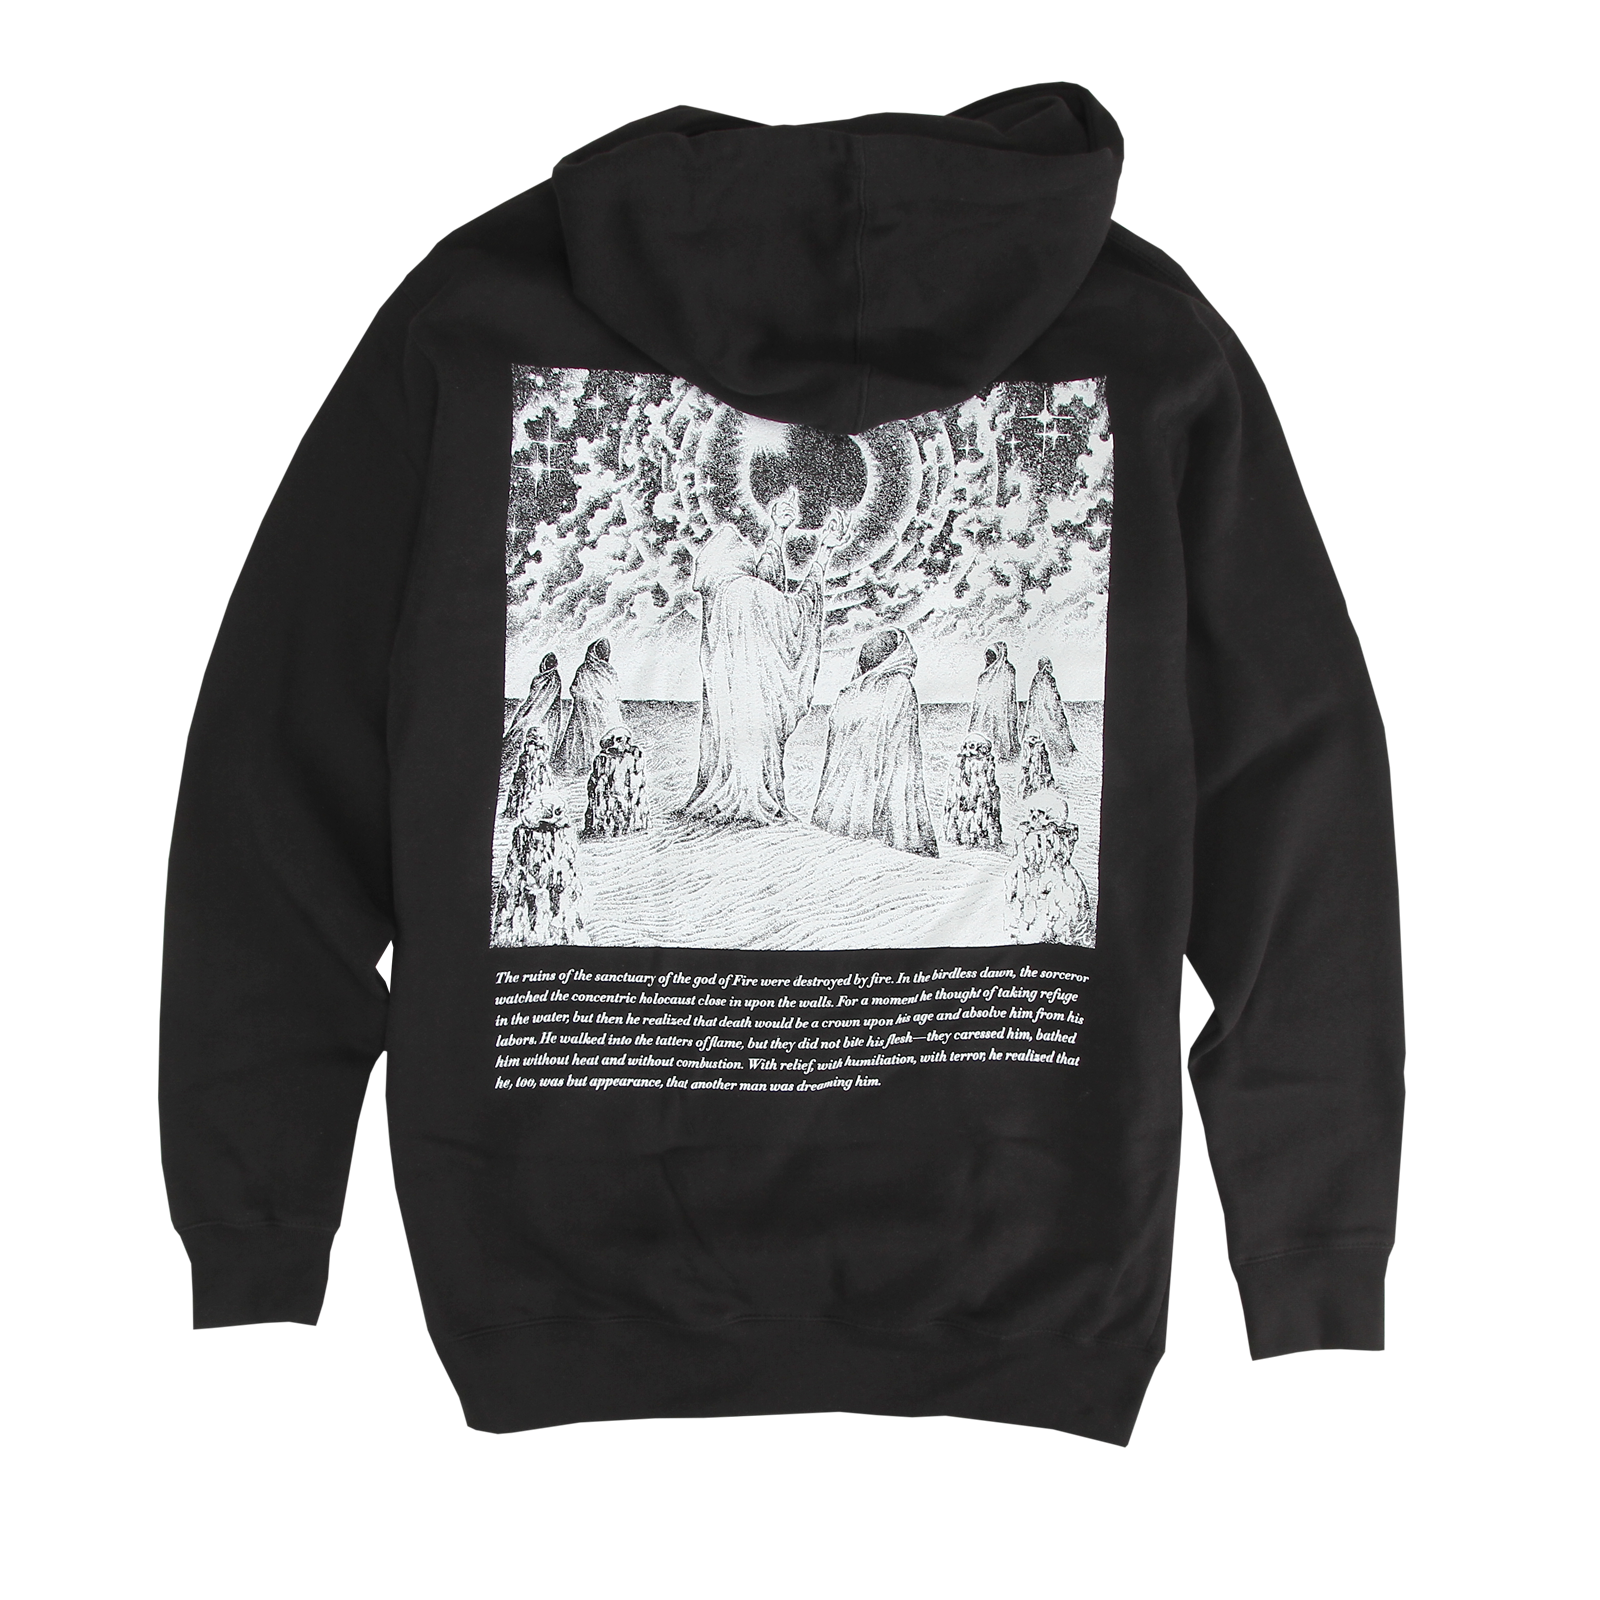 [SOLD-OUT] Shades - In Praise of Darkness - Pullover Sweatshirt